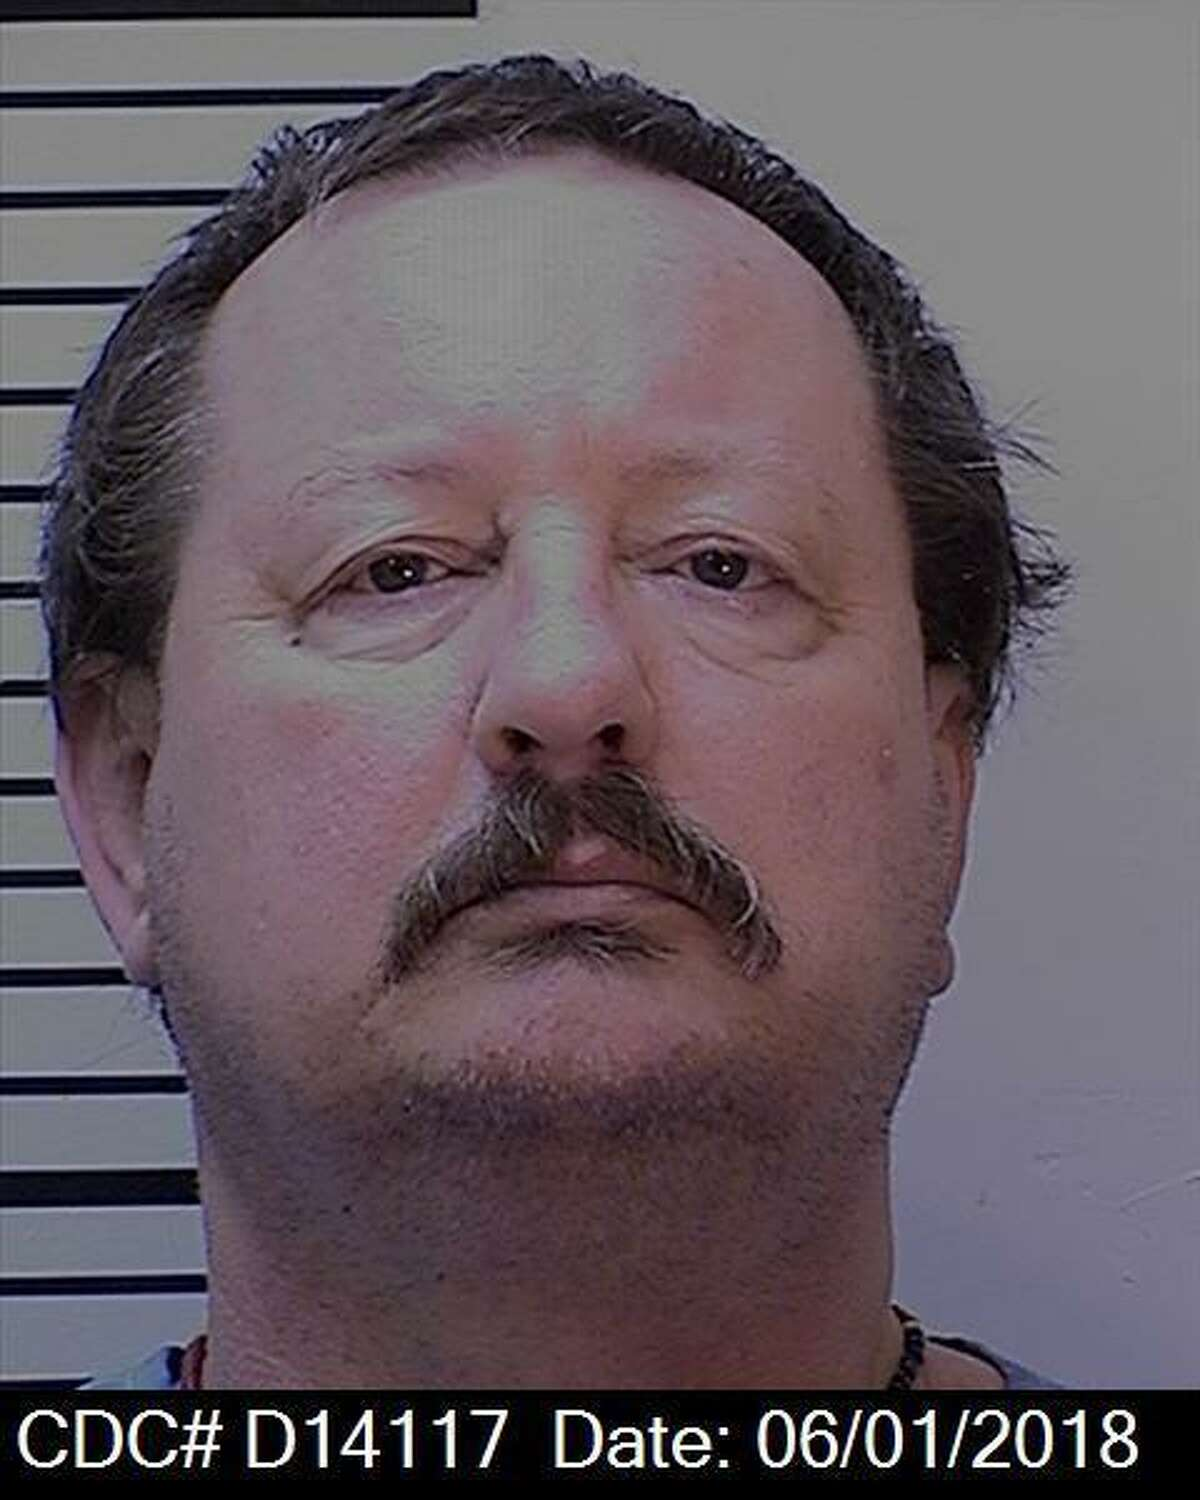 Troy Ashmus, 58, a condemned San Quentin State Prison inmate, died Monday from what officials believe to be COVID-19 complications.